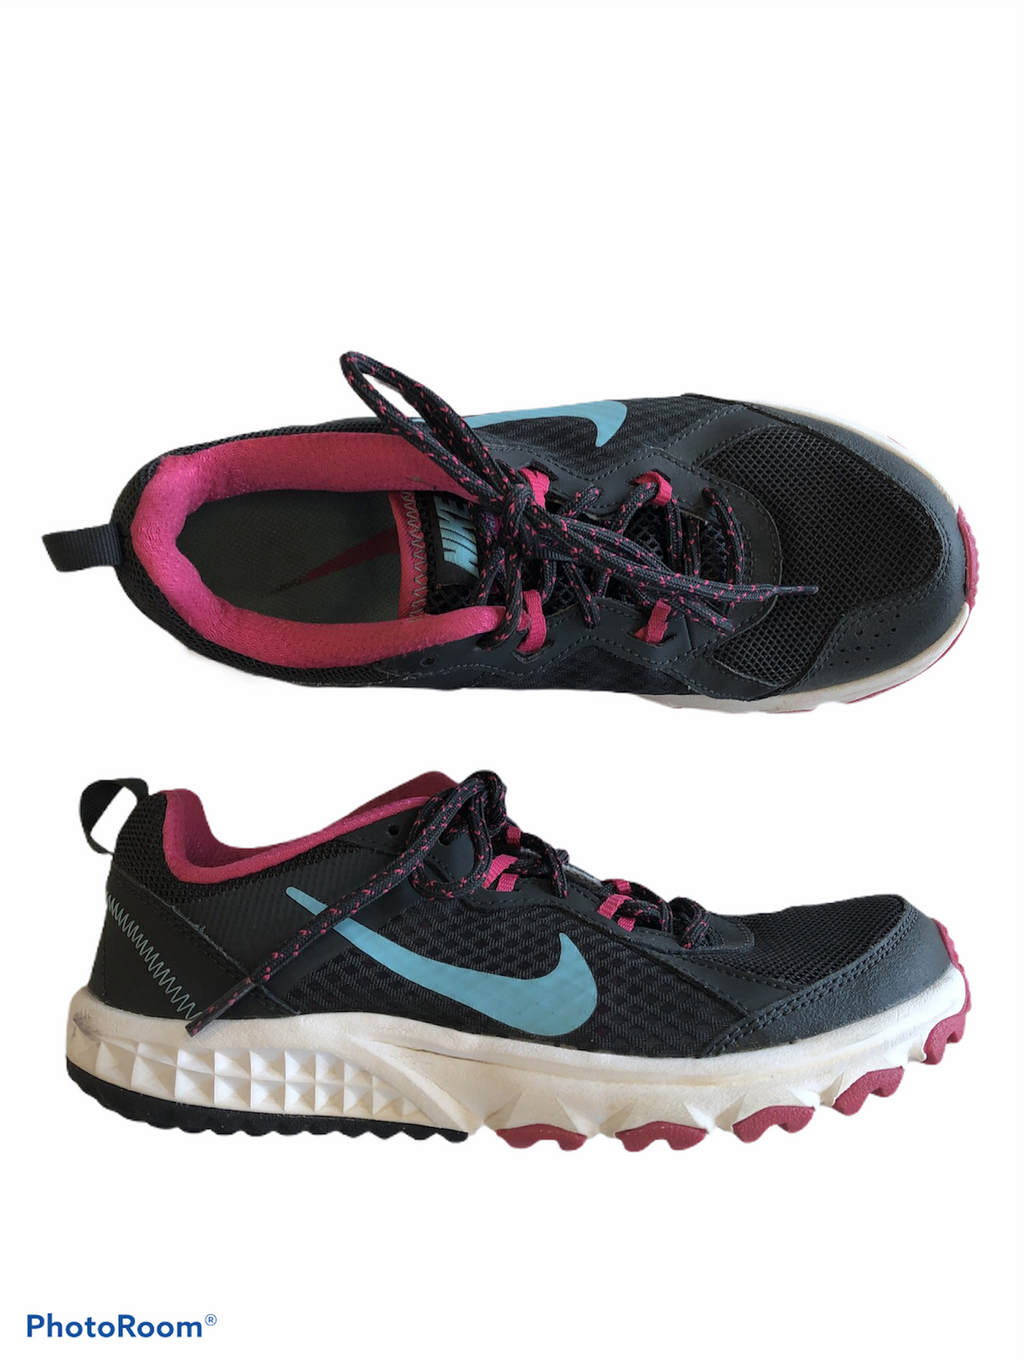 Shoes Athletic By Nike  Size: 6